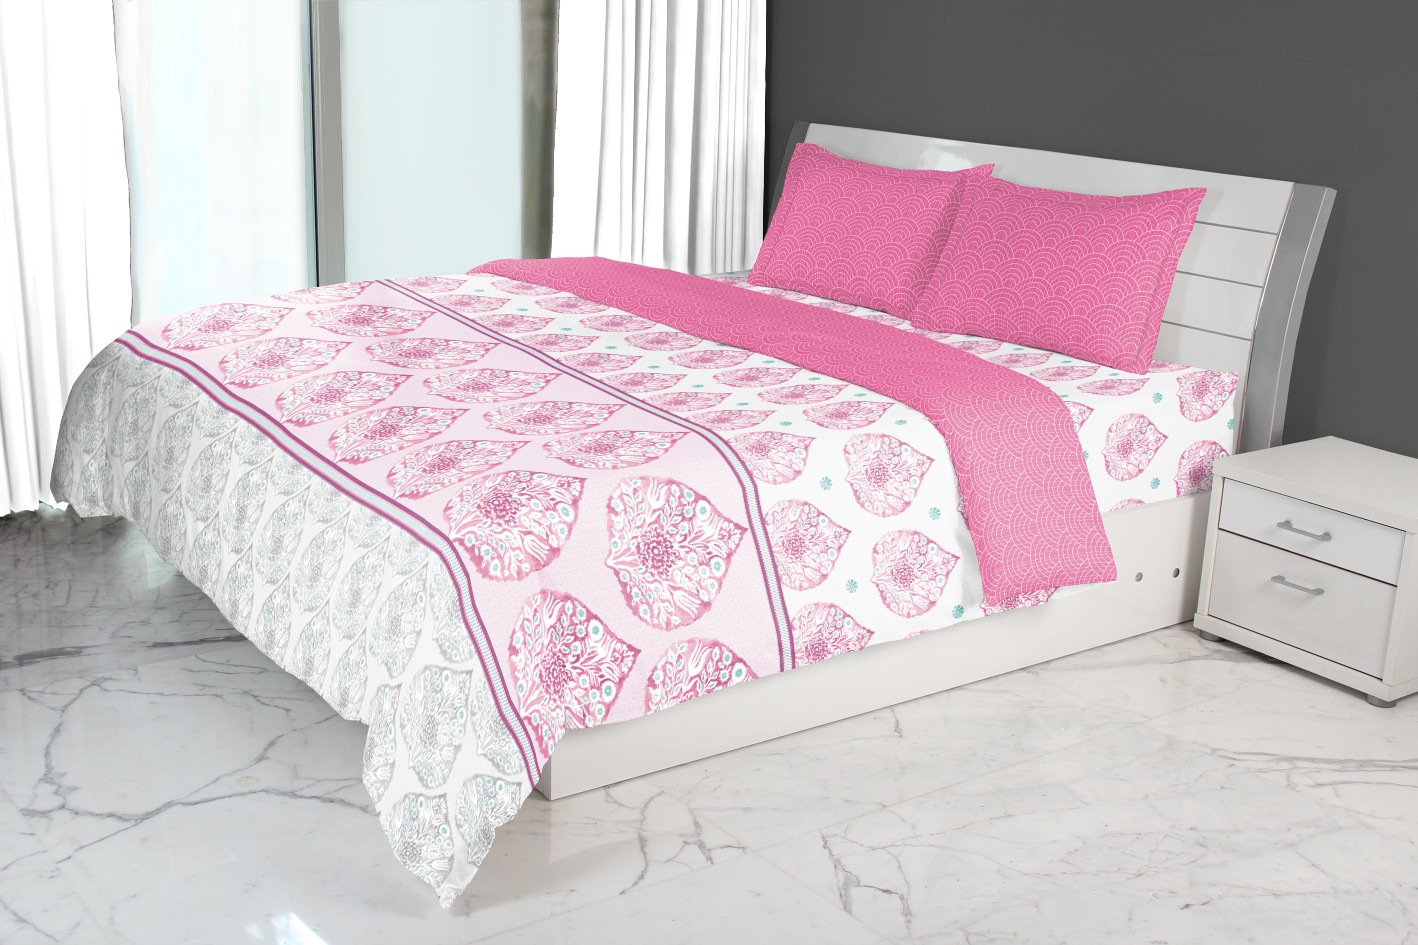 Nora Peepal Printed Double Comforter Rose Comforters in Rose Colour by Living Essence